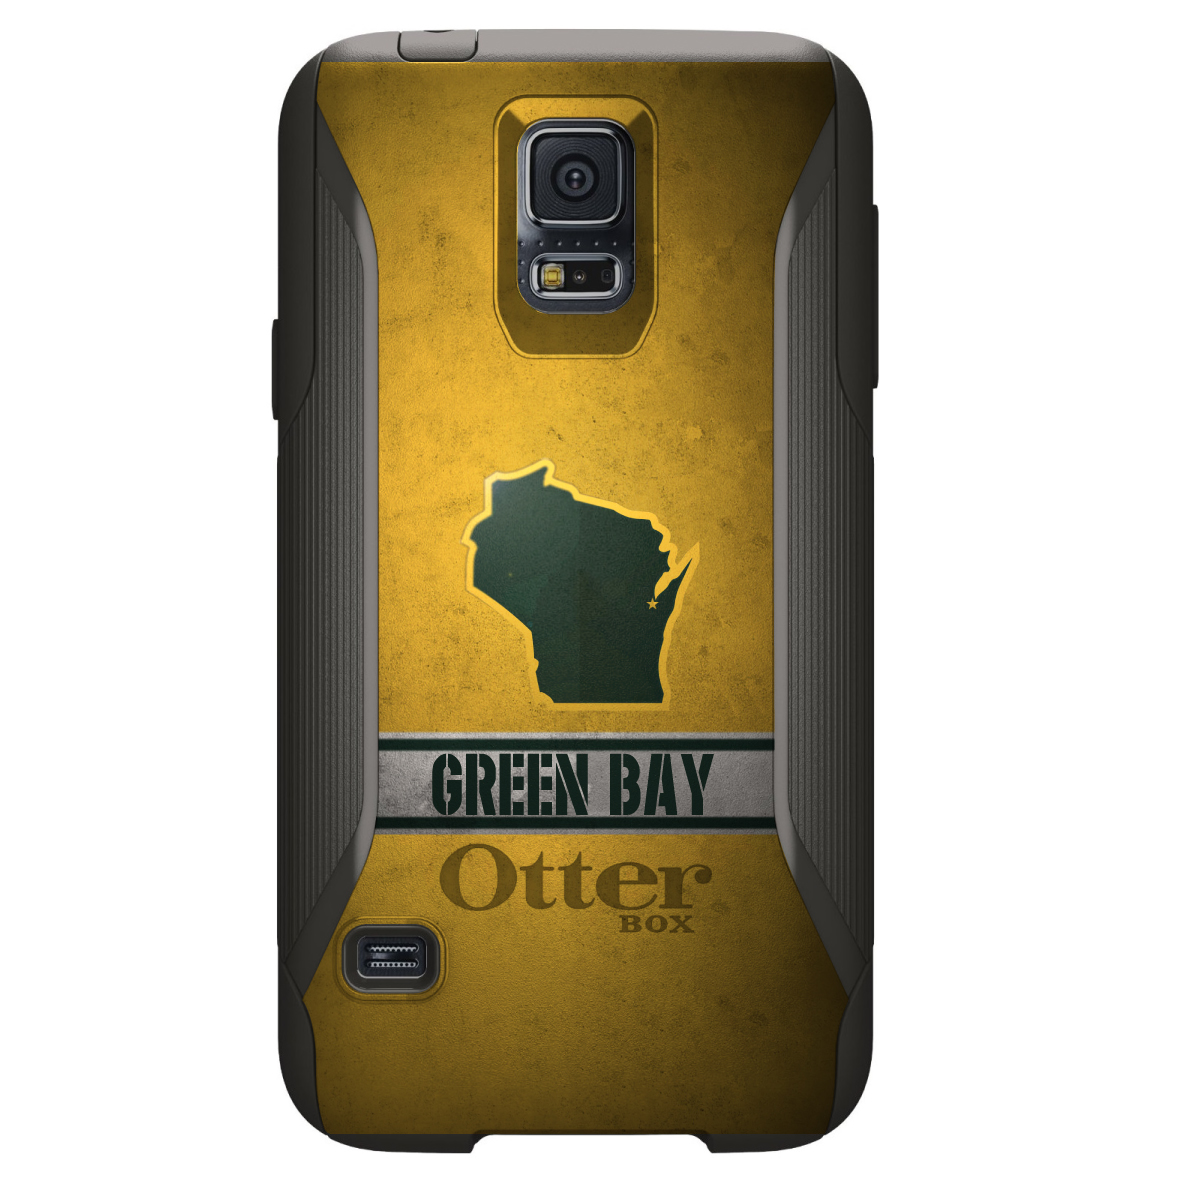 DistinctInk™ Custom Black OtterBox Commuter Series Case for Samsung Galaxy S5 - Green Bay Wisconsin